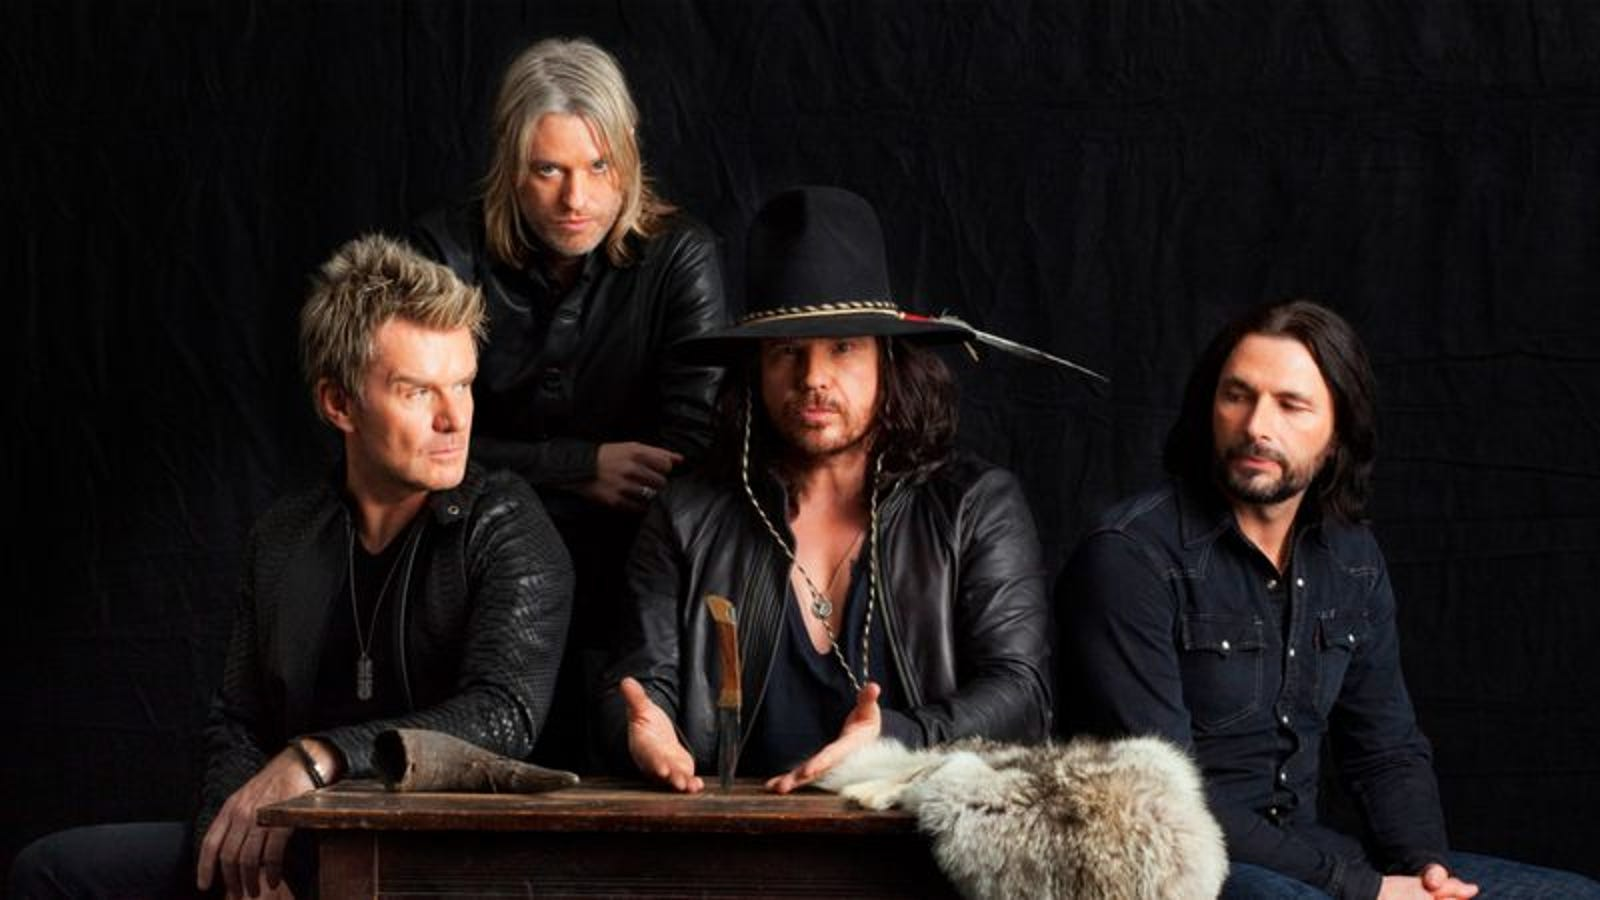 The Cult's Ian Astbury talks about songs, ignoring the